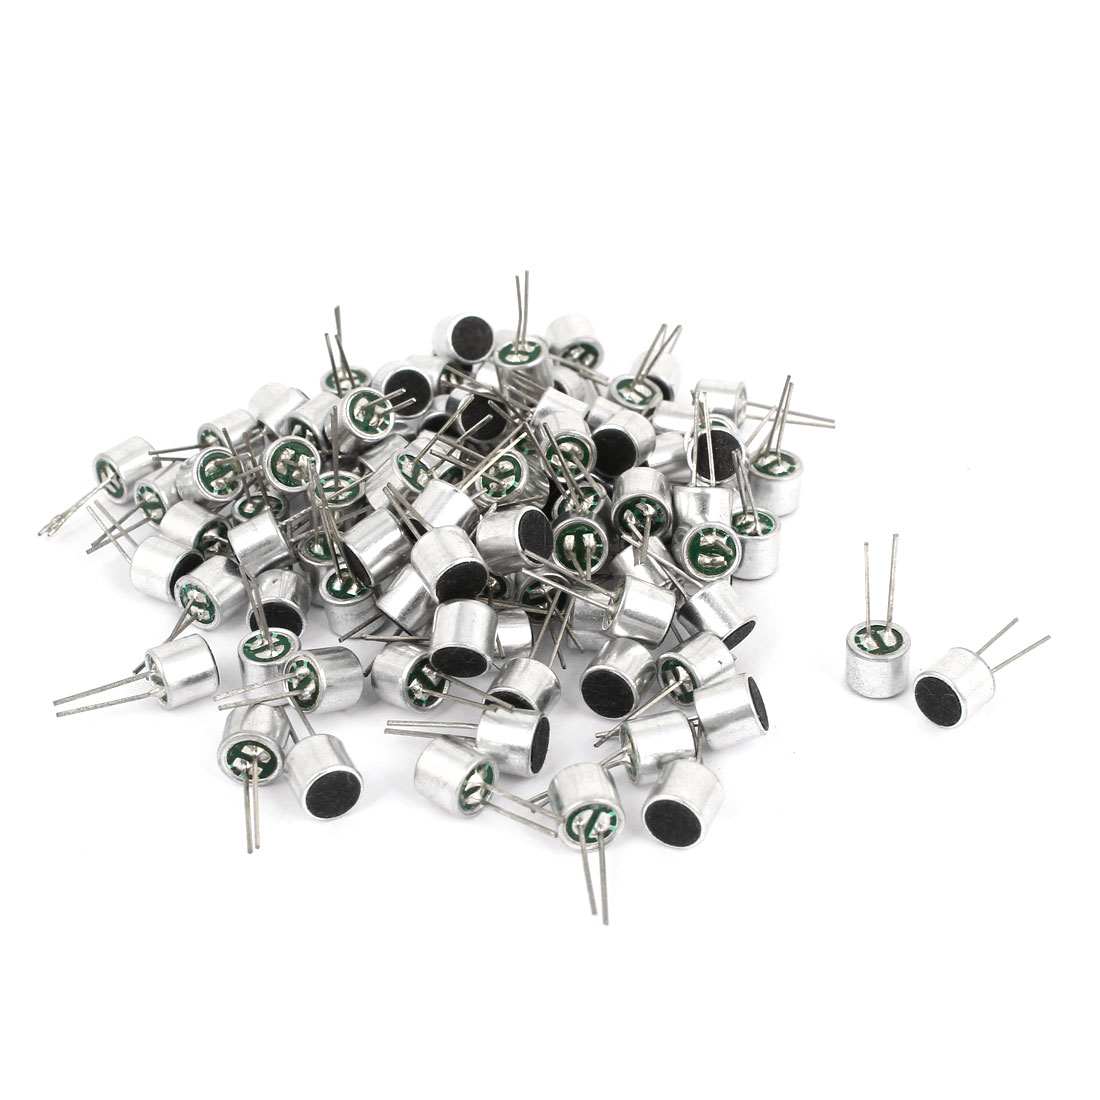 100pcs 2 Terminals Electret Condenser MIC Capsule 6mm x 5mm for PC Phone MP3 MP4